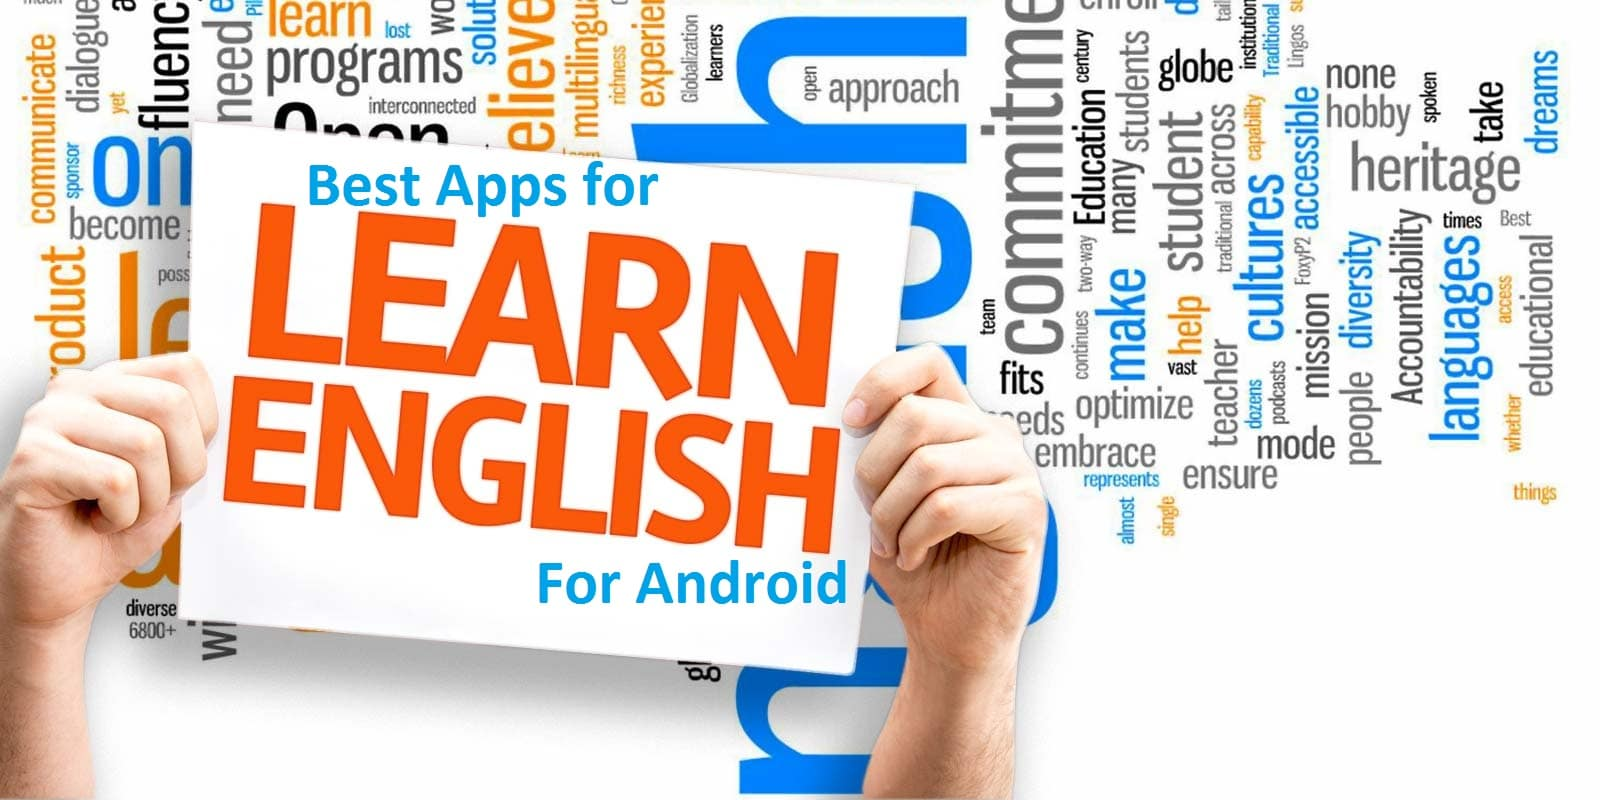 Best Apps for learning spoken english for Android Free Download